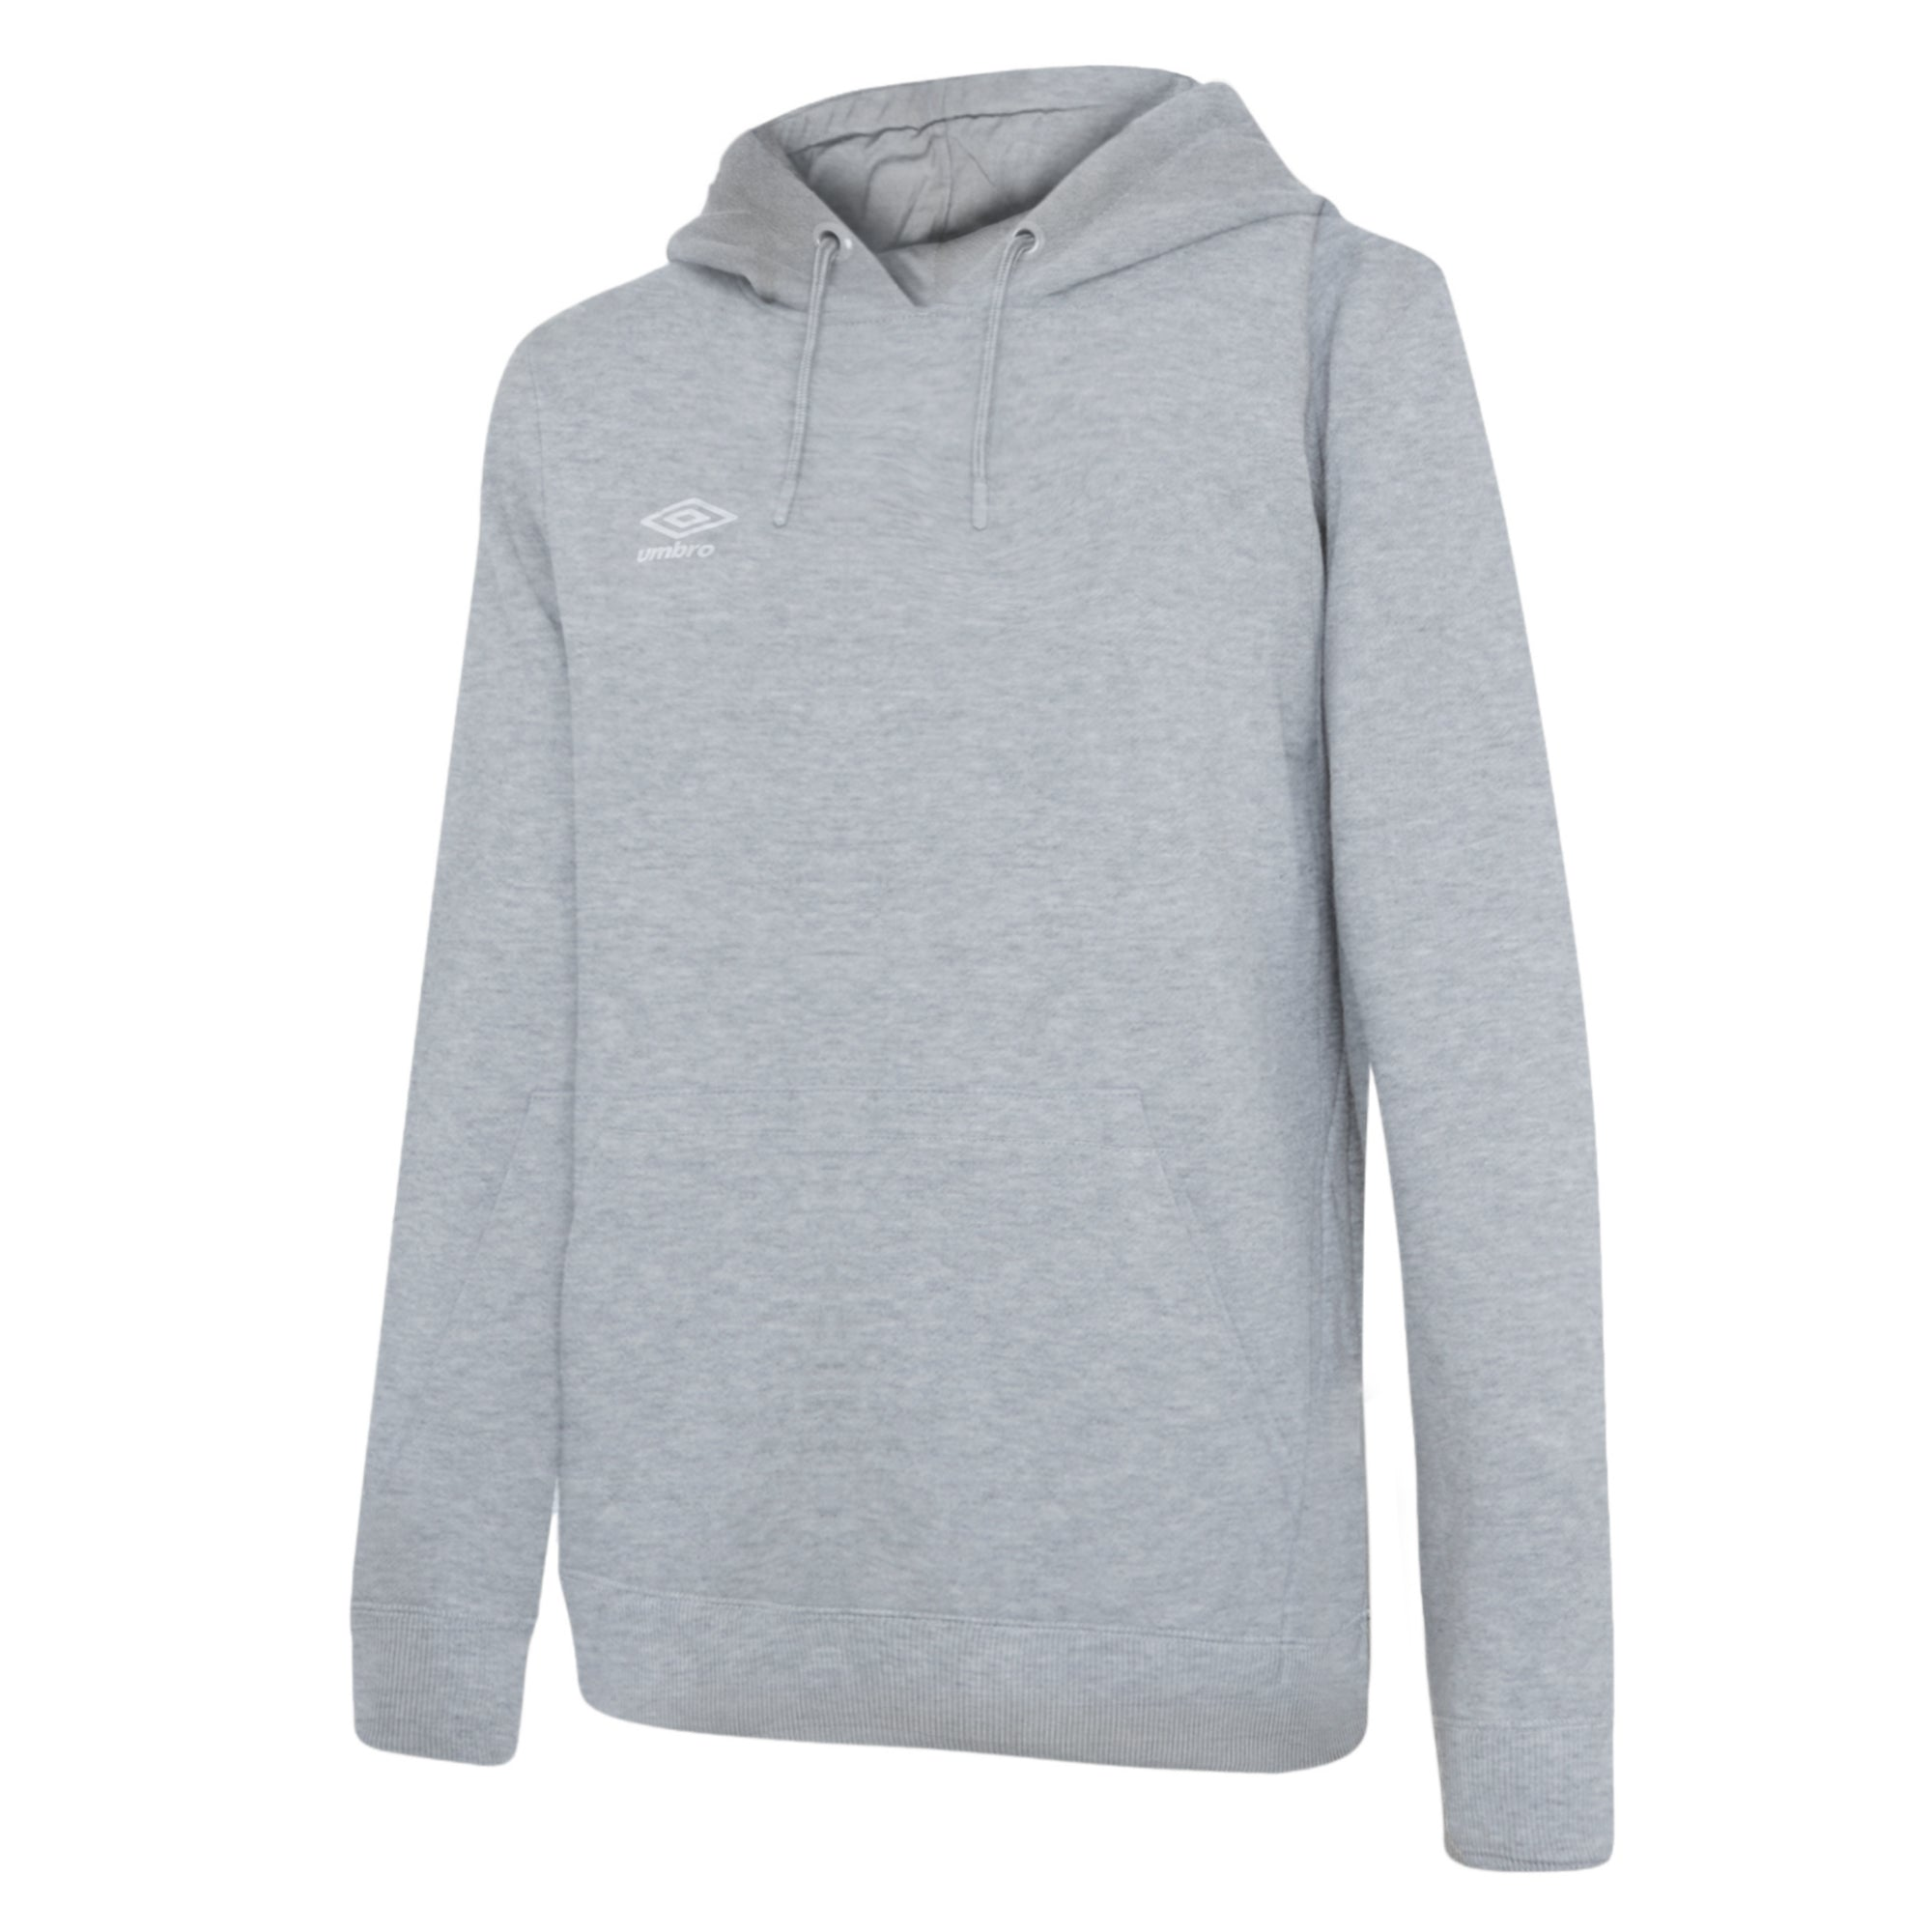 Umbro Club Leisure Women's Hoody - Grey Marl/White